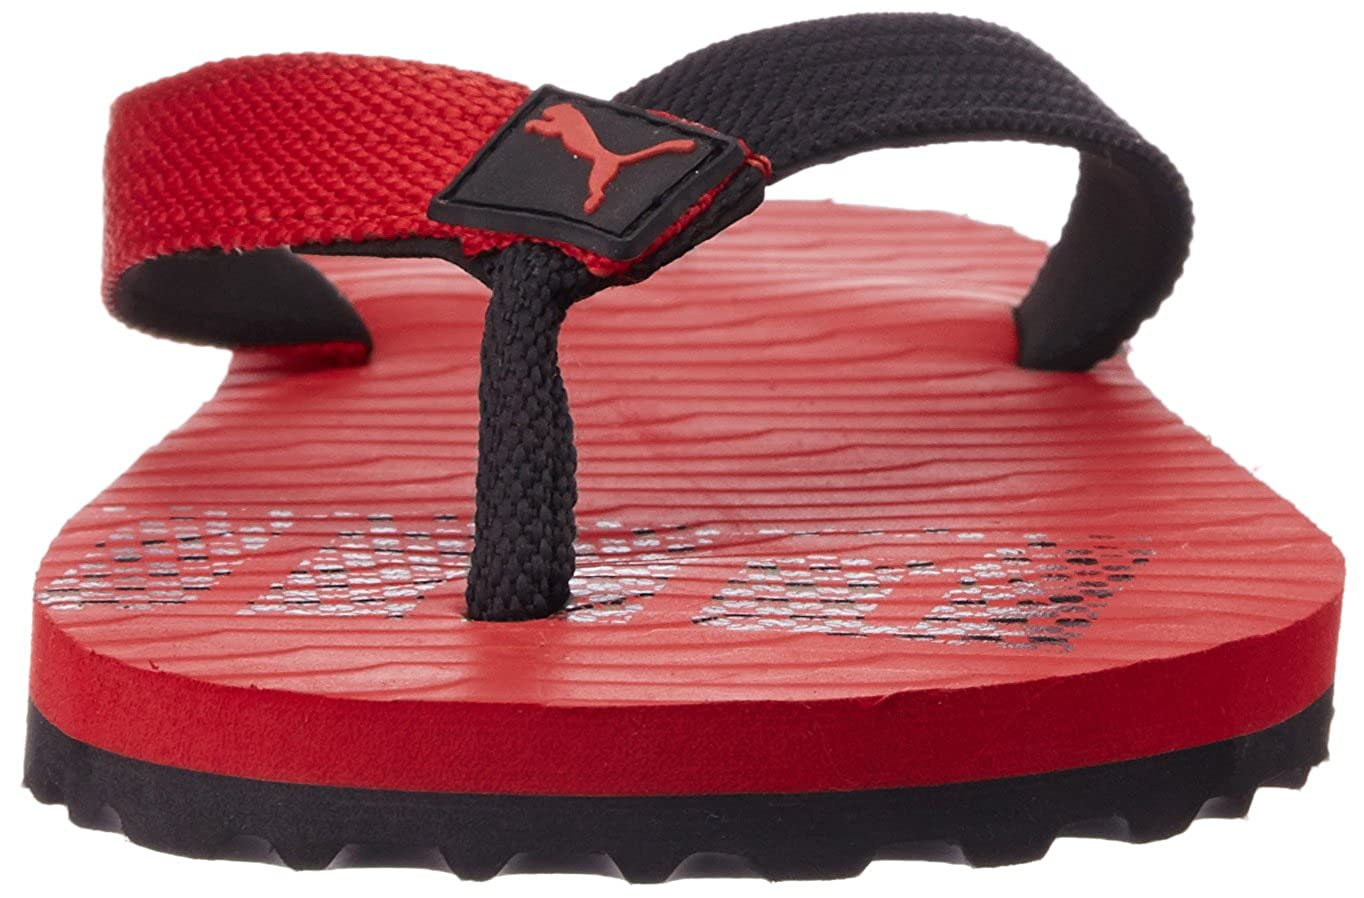 05abfc8a4ec0 Puma Men s MiamiFashionDP Hawaii Thong Sandals  Buy Online at Low Prices in  India - Amazon.in